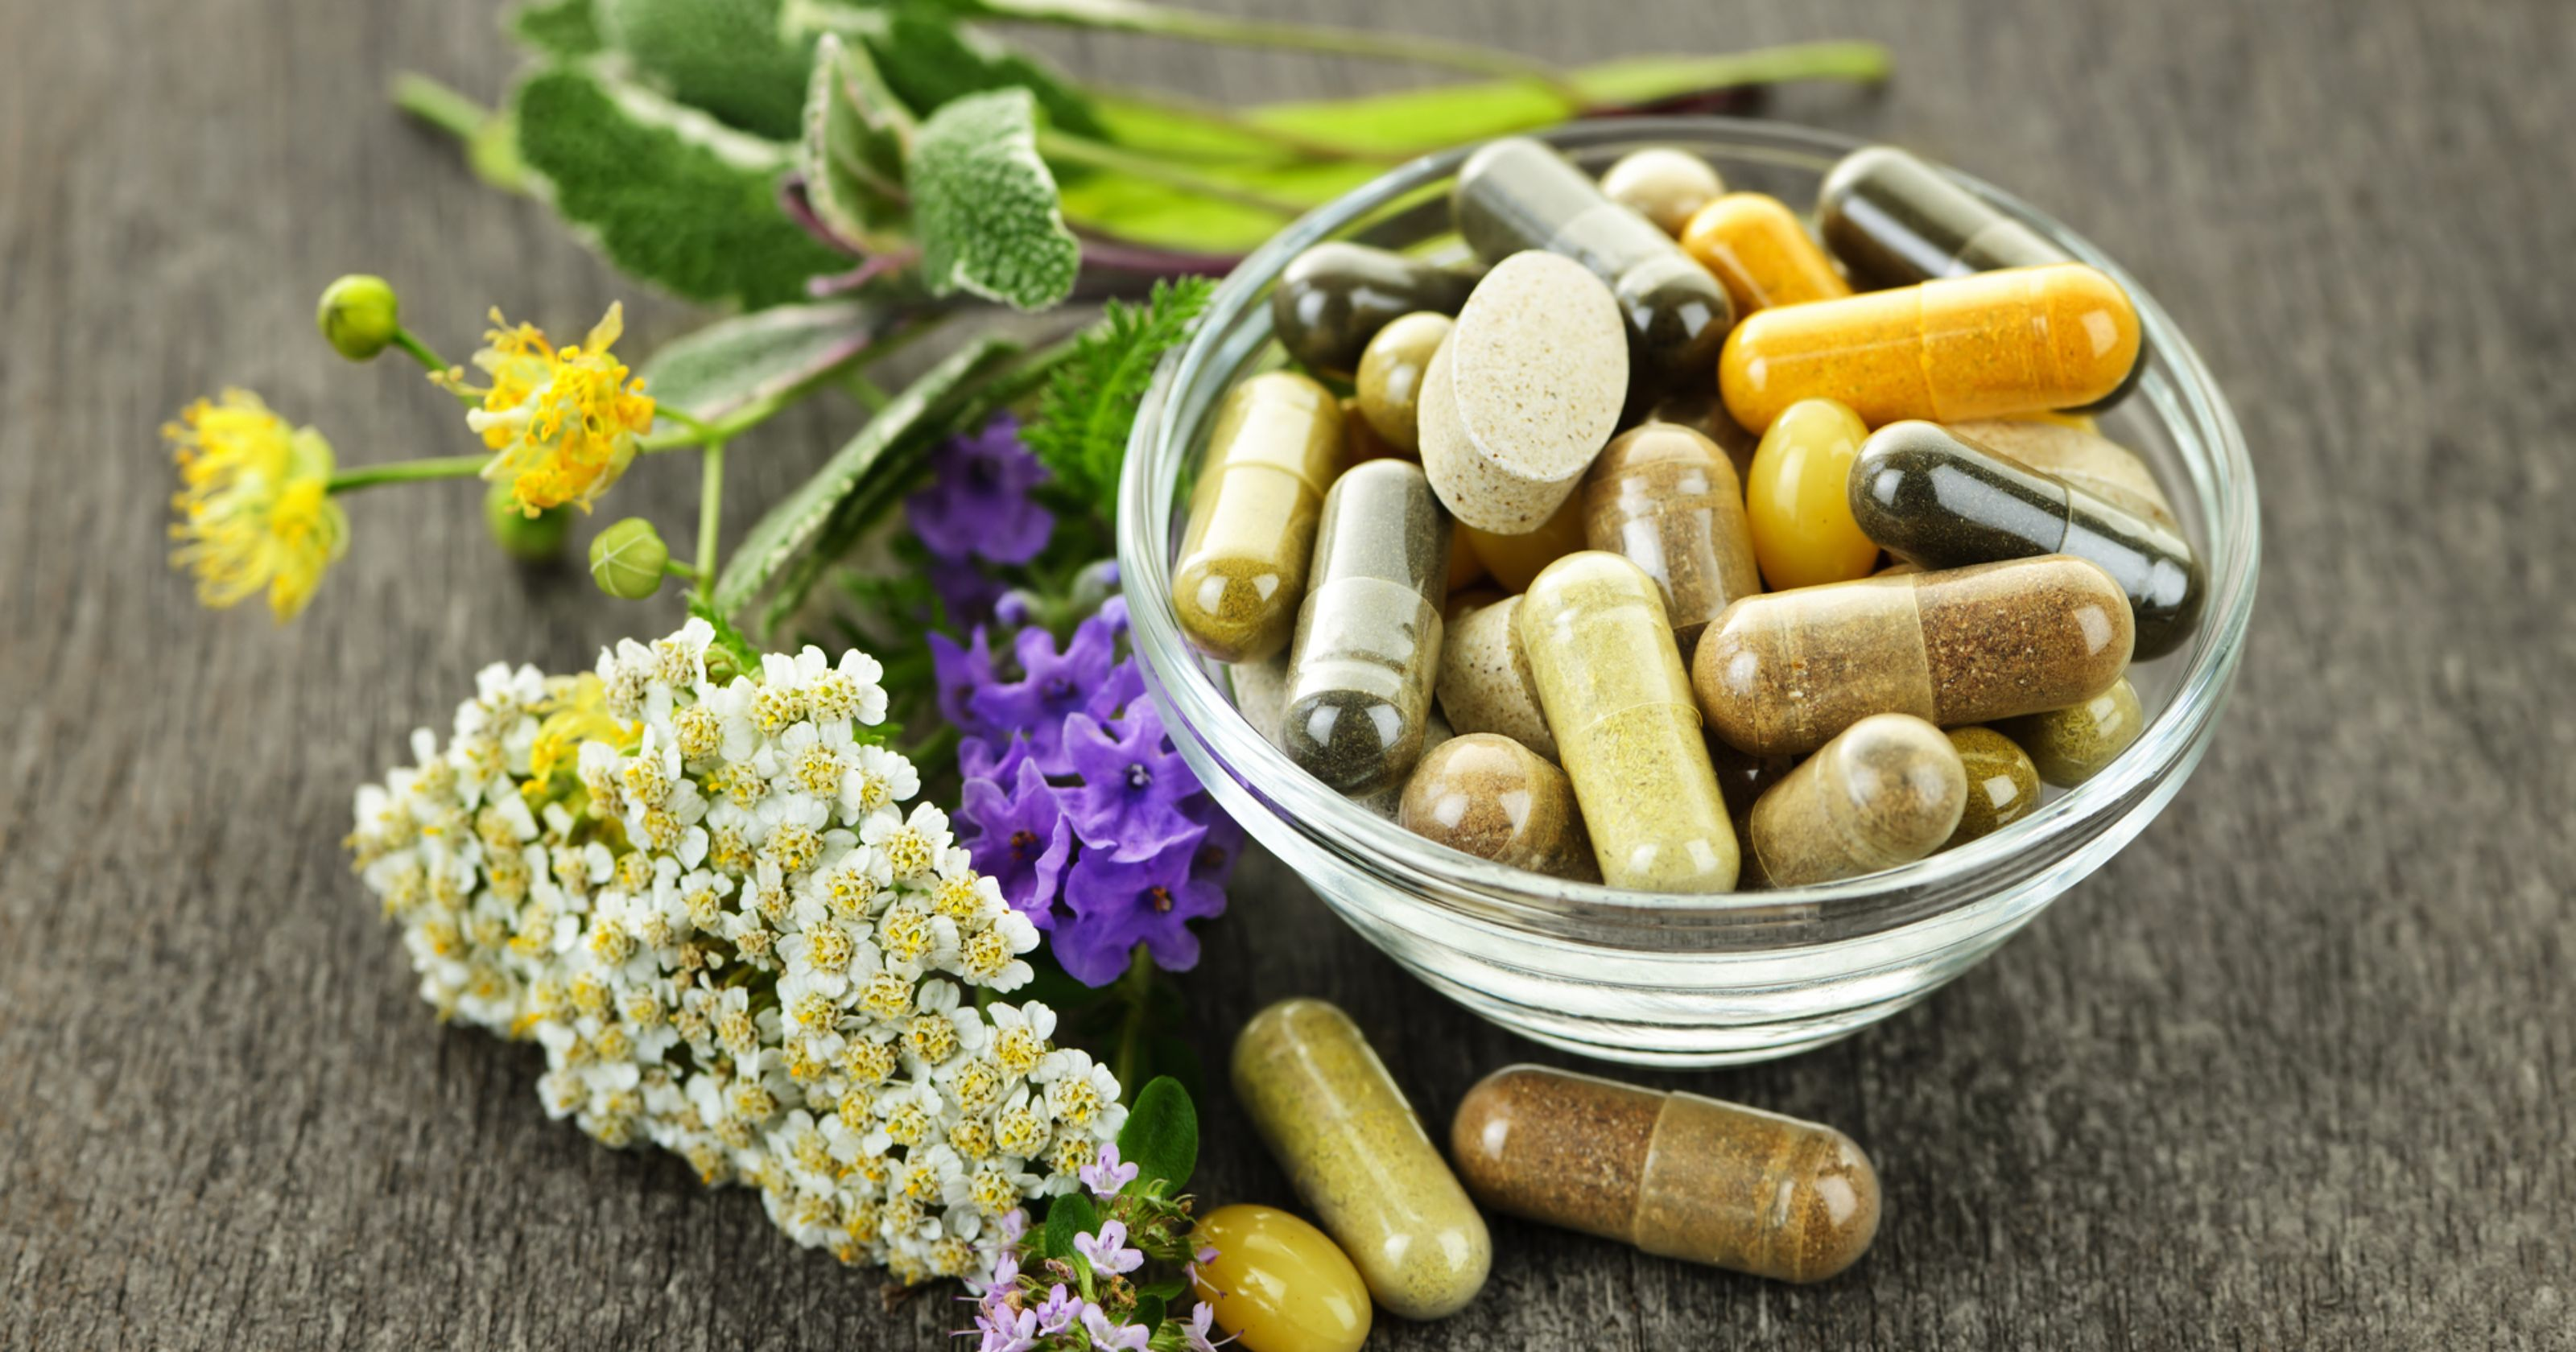 Reclassification of Certain Natural Health Products as Food